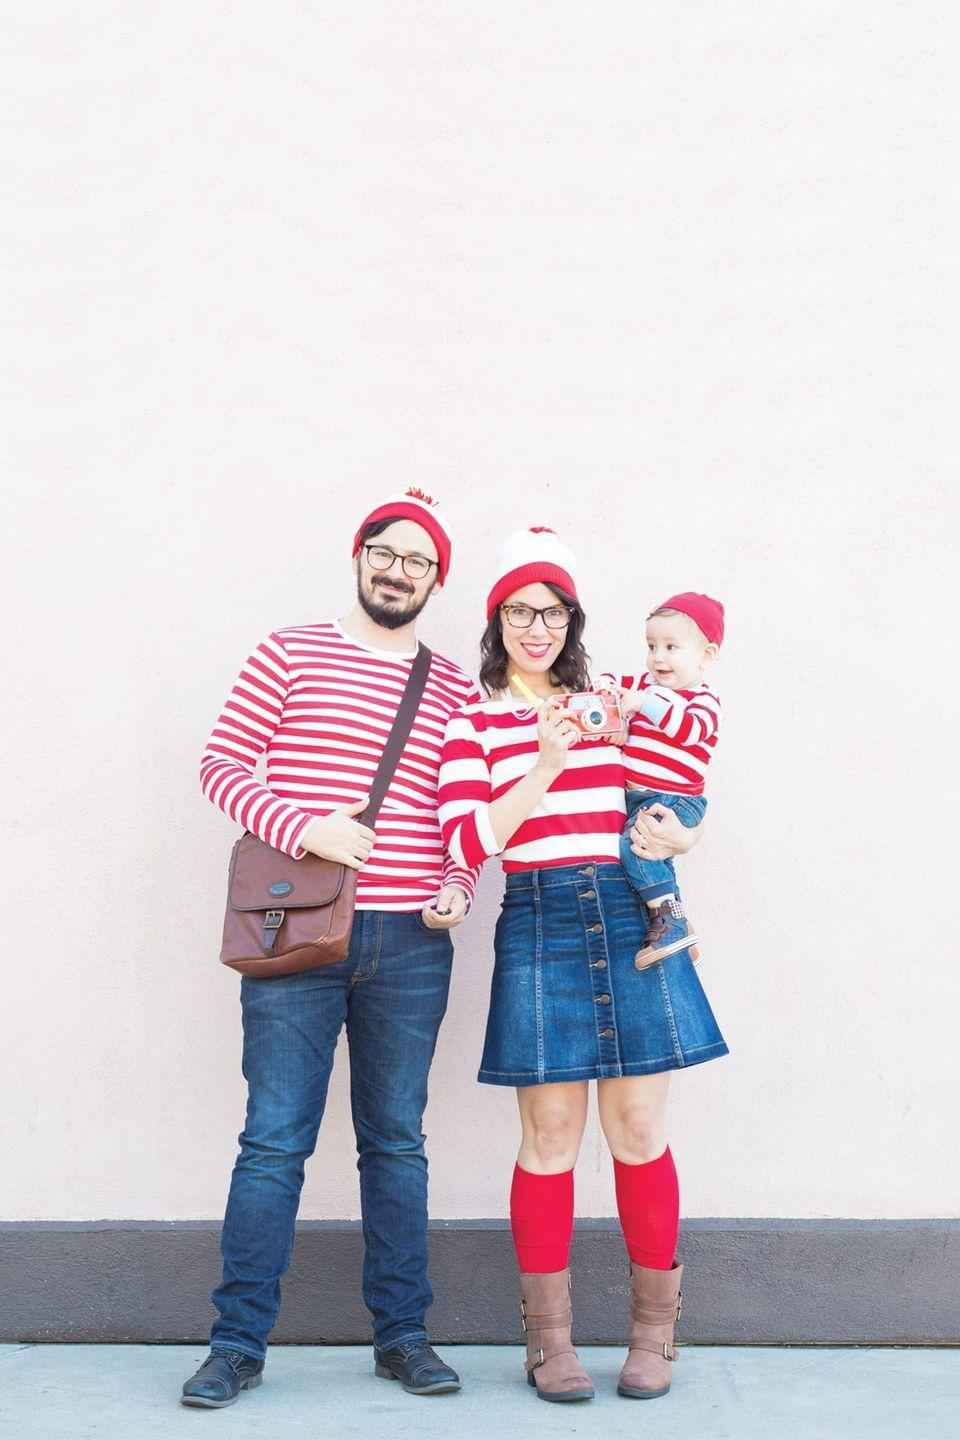 """<p>A great group costume or a perfectly sufficient solo option that doesn't require much. Pair a denim skirt with a red-and-white striped shirt, then add a matching hat and some specs. </p><p><a class=""""link rapid-noclick-resp"""" href=""""https://lovelyindeed.com/wheres-waldo-costume-family-halloween/"""" rel=""""nofollow noopener"""" target=""""_blank"""" data-ylk=""""slk:GET THE TUTORIAL"""">GET THE TUTORIAL</a></p><p><a class=""""link rapid-noclick-resp"""" href=""""https://www.amazon.com/Long-Sleeve-Striped-Tee-Stripes/dp/B07TYY3SJL?tag=syn-yahoo-20&ascsubtag=%5Bartid%7C10072.g.33547559%5Bsrc%7Cyahoo-us"""" rel=""""nofollow noopener"""" target=""""_blank"""" data-ylk=""""slk:SHOP SHIRT"""">SHOP SHIRT</a></p>"""